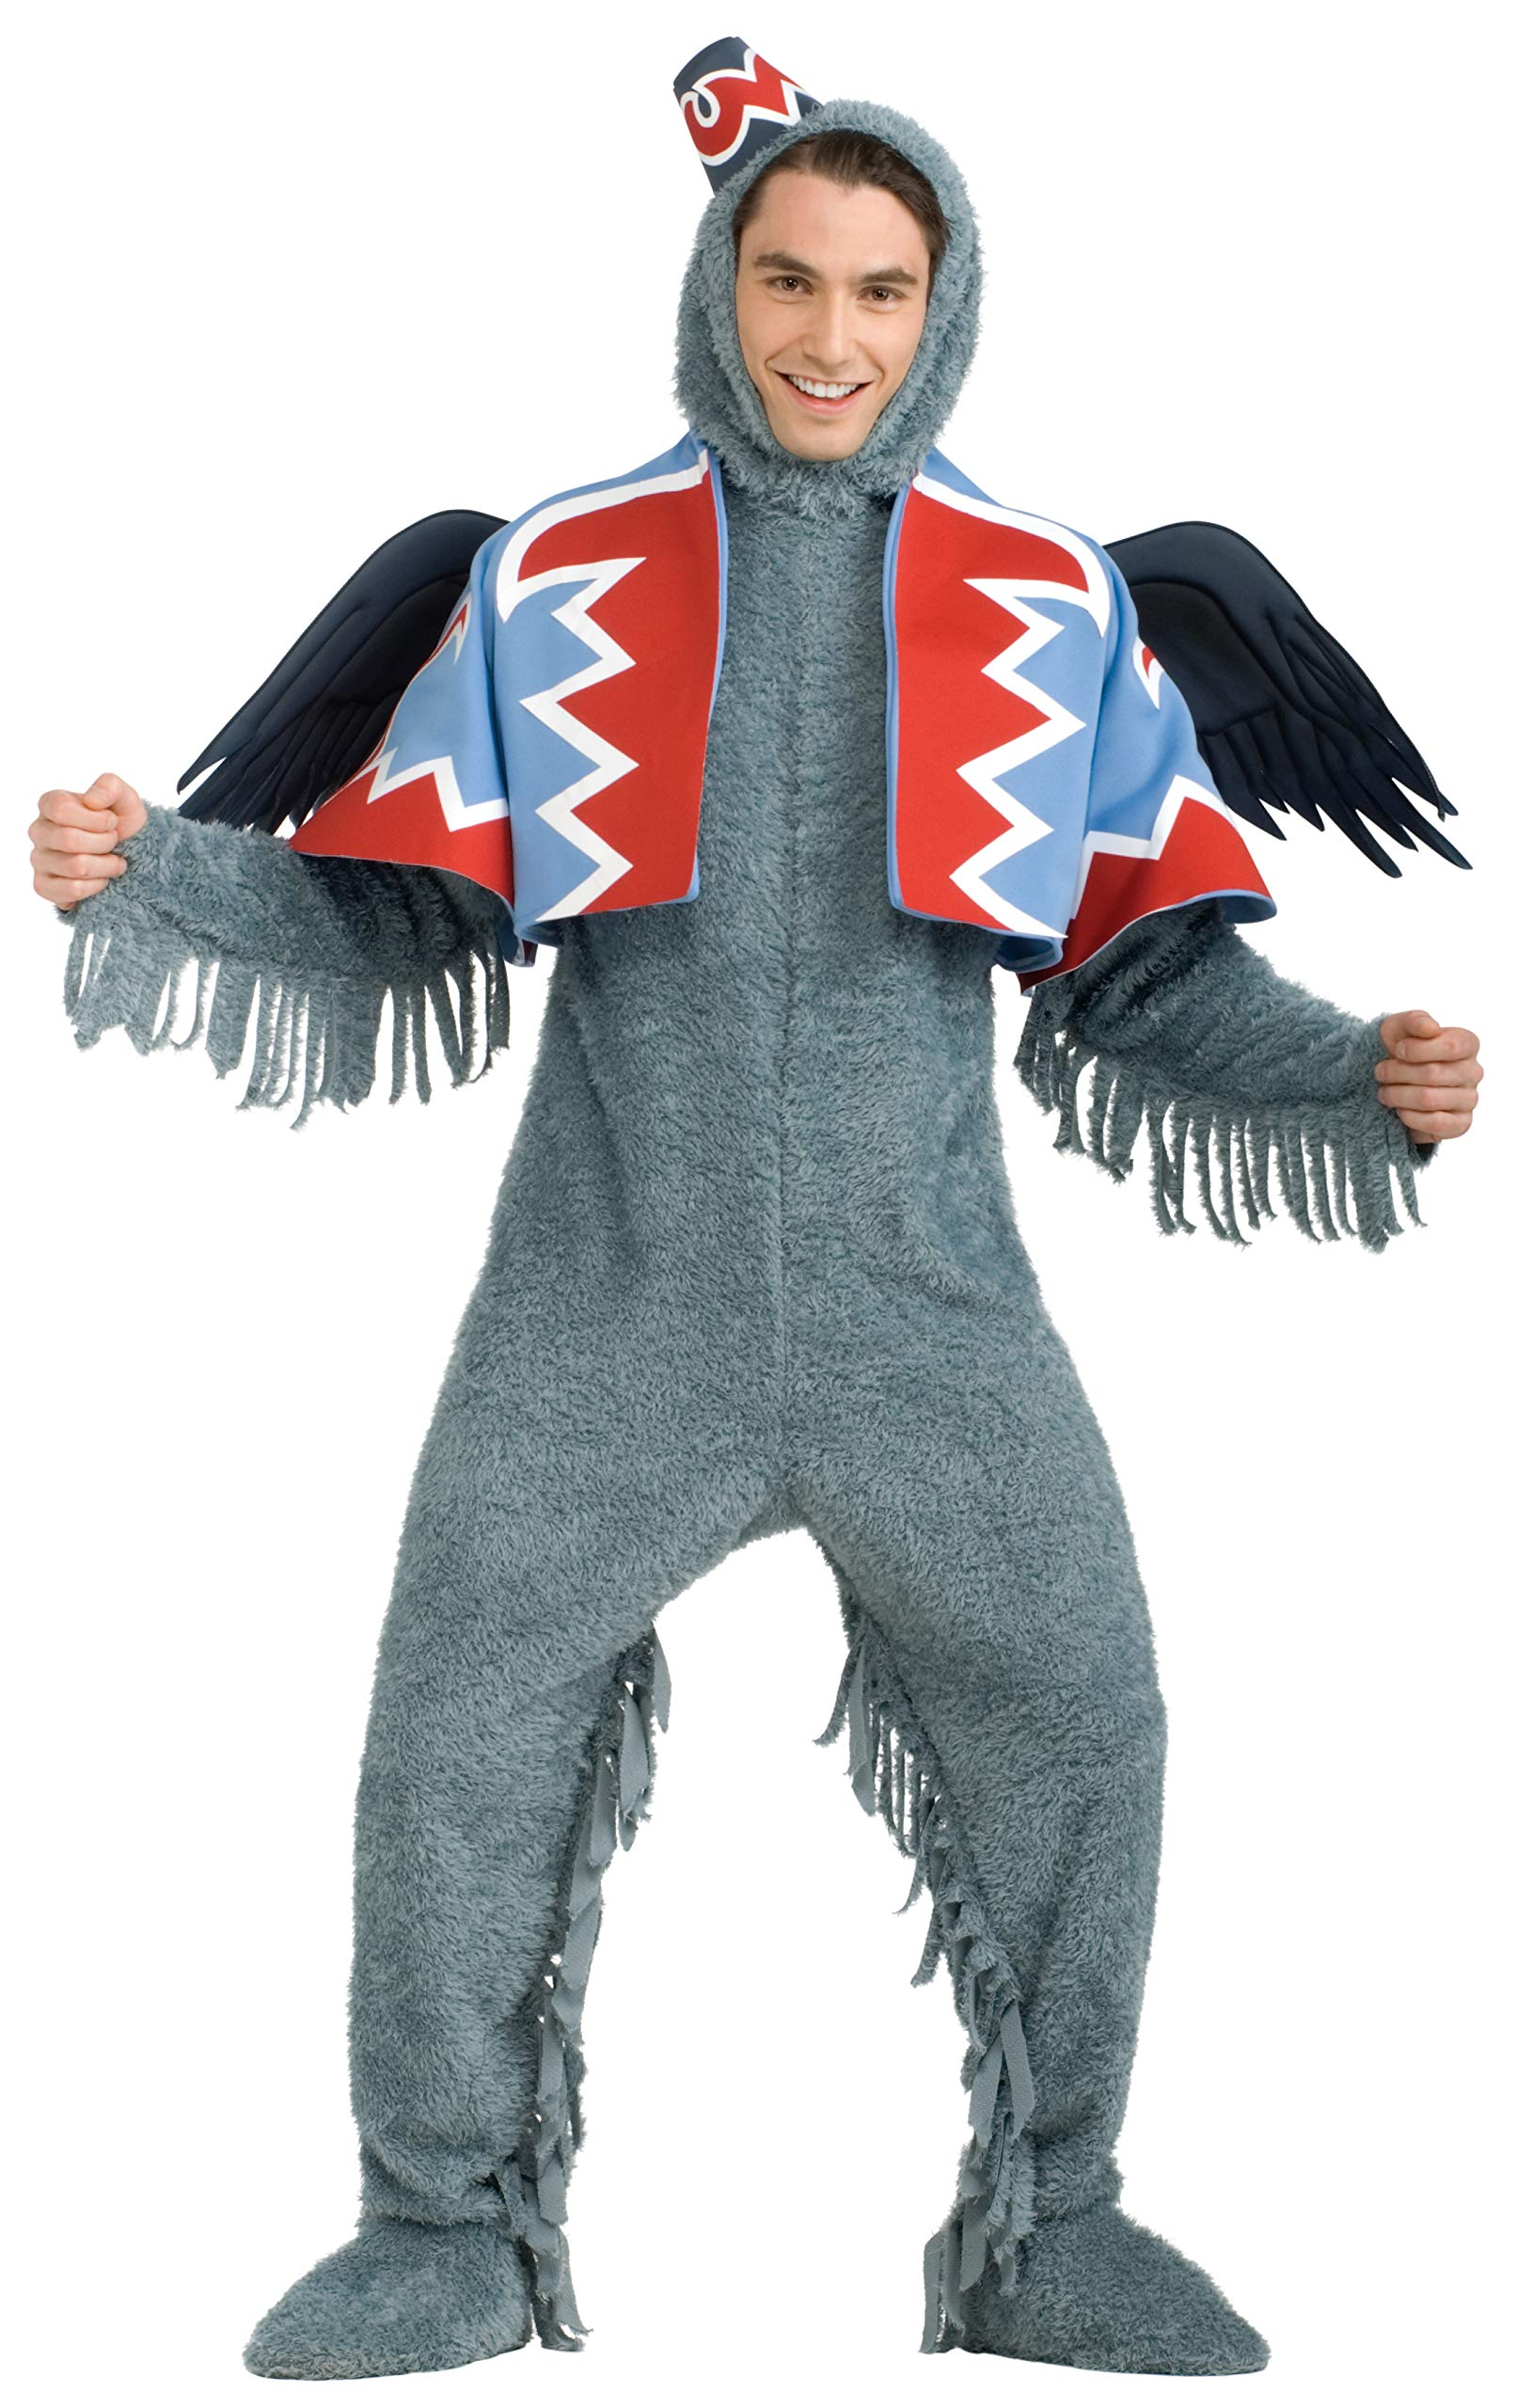 Rubie's Costume Wizard Of Oz 75th Anniversary Edition Deluxe Winged Monkey Costume